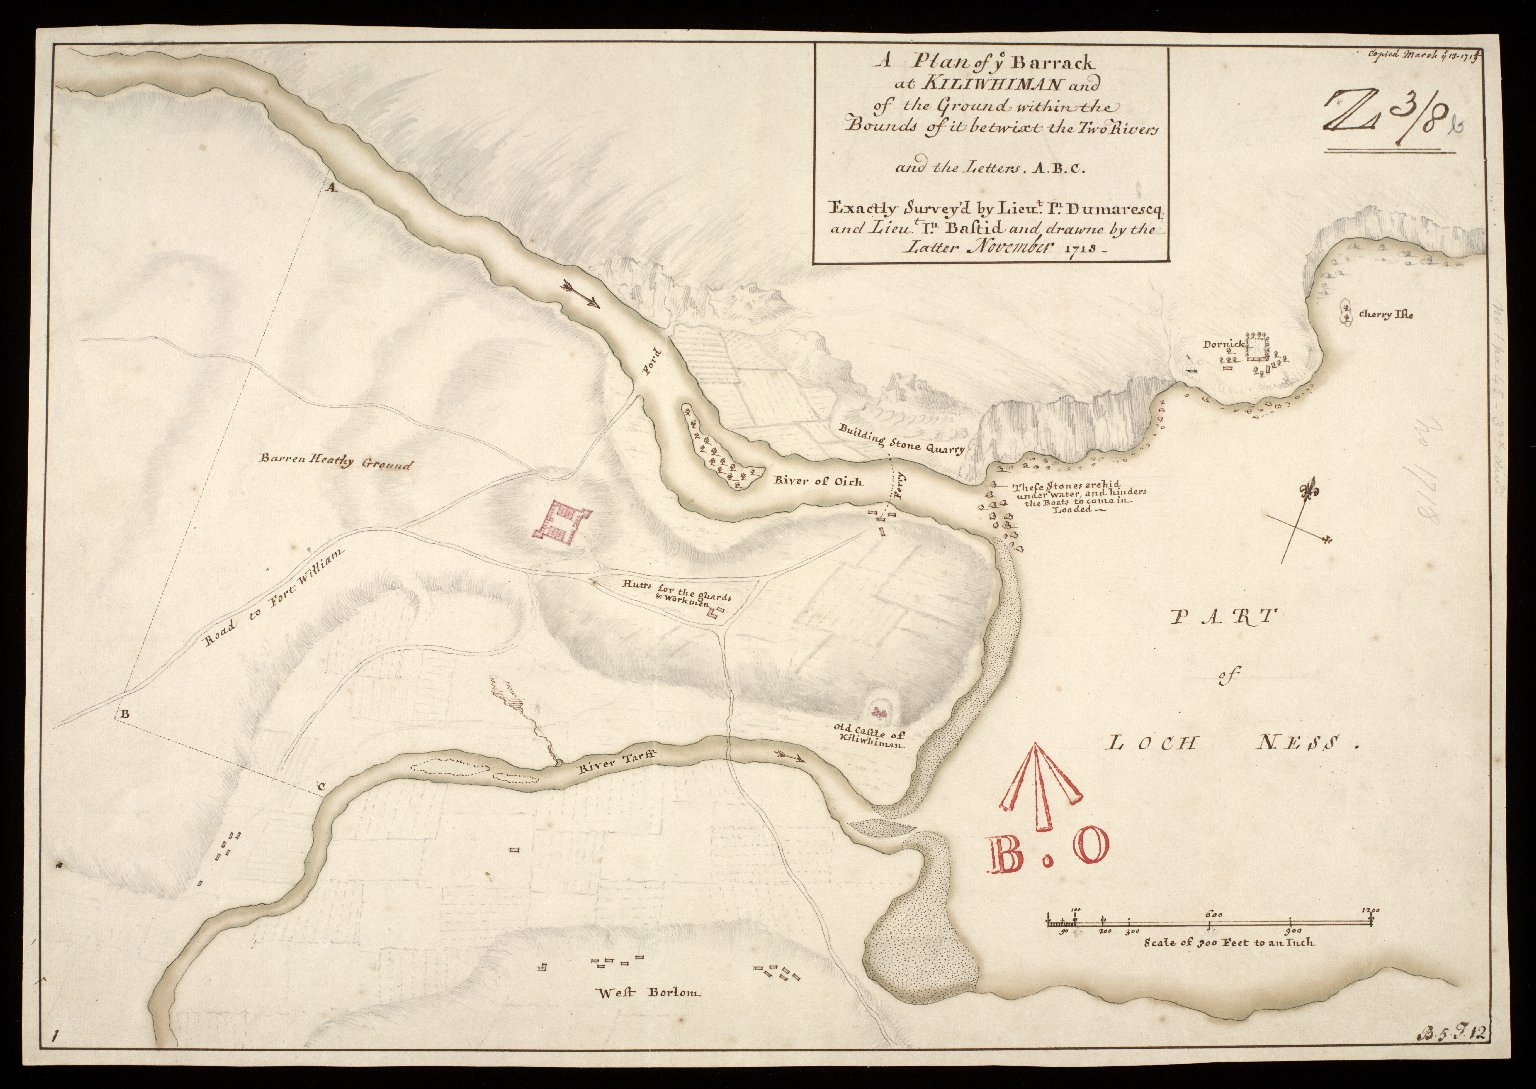 A Plan of ye barrack at Kiliwhiman [i.e. Kiliwhimen] : and of the ground within the bounds of it betwixt the two rivers; and the letters A.B.C [copy] [1 of 1]